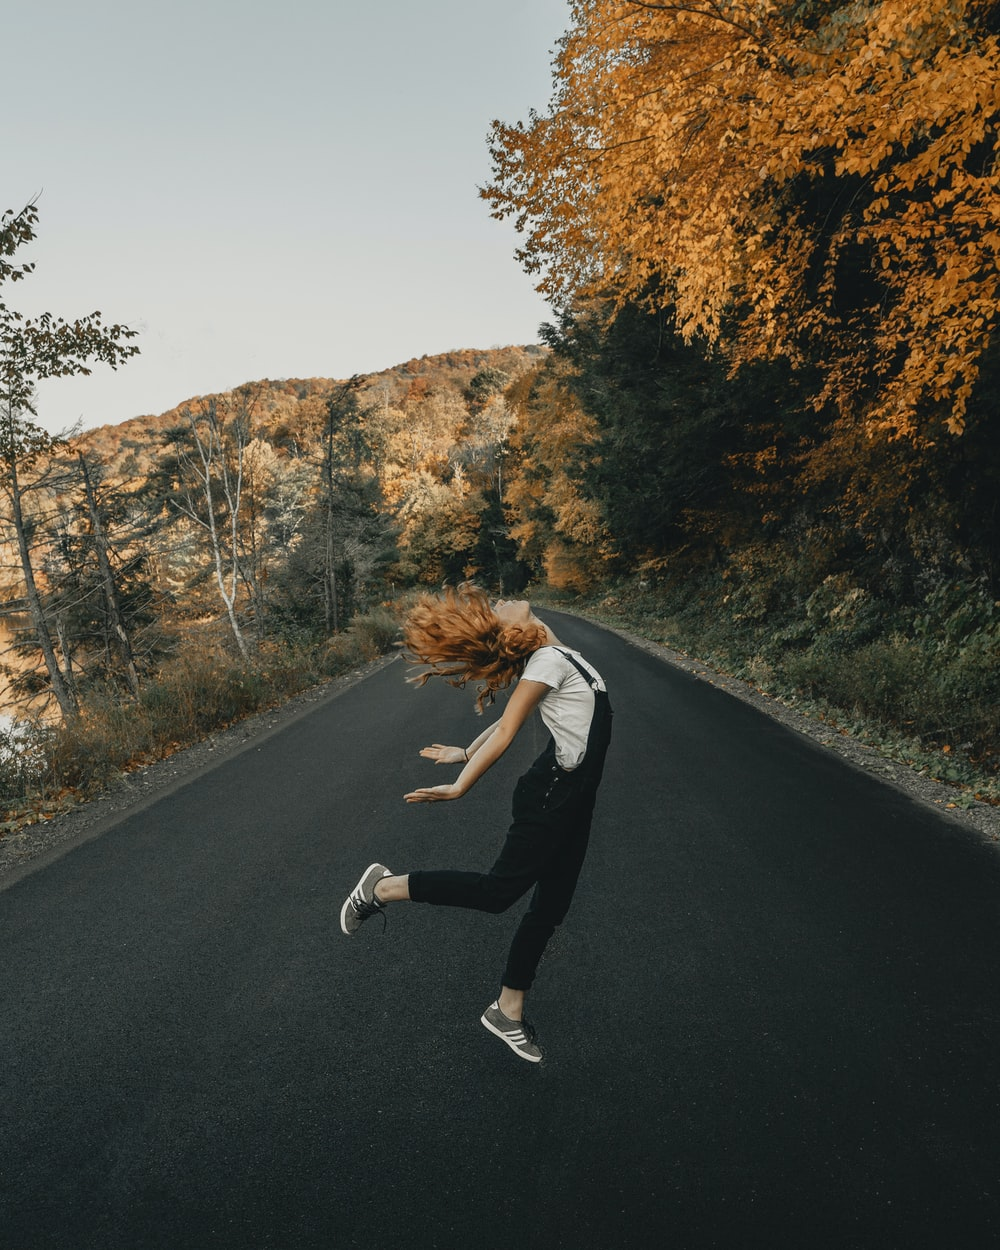 woman in white long sleeve shirt and black pants running on road during daytime